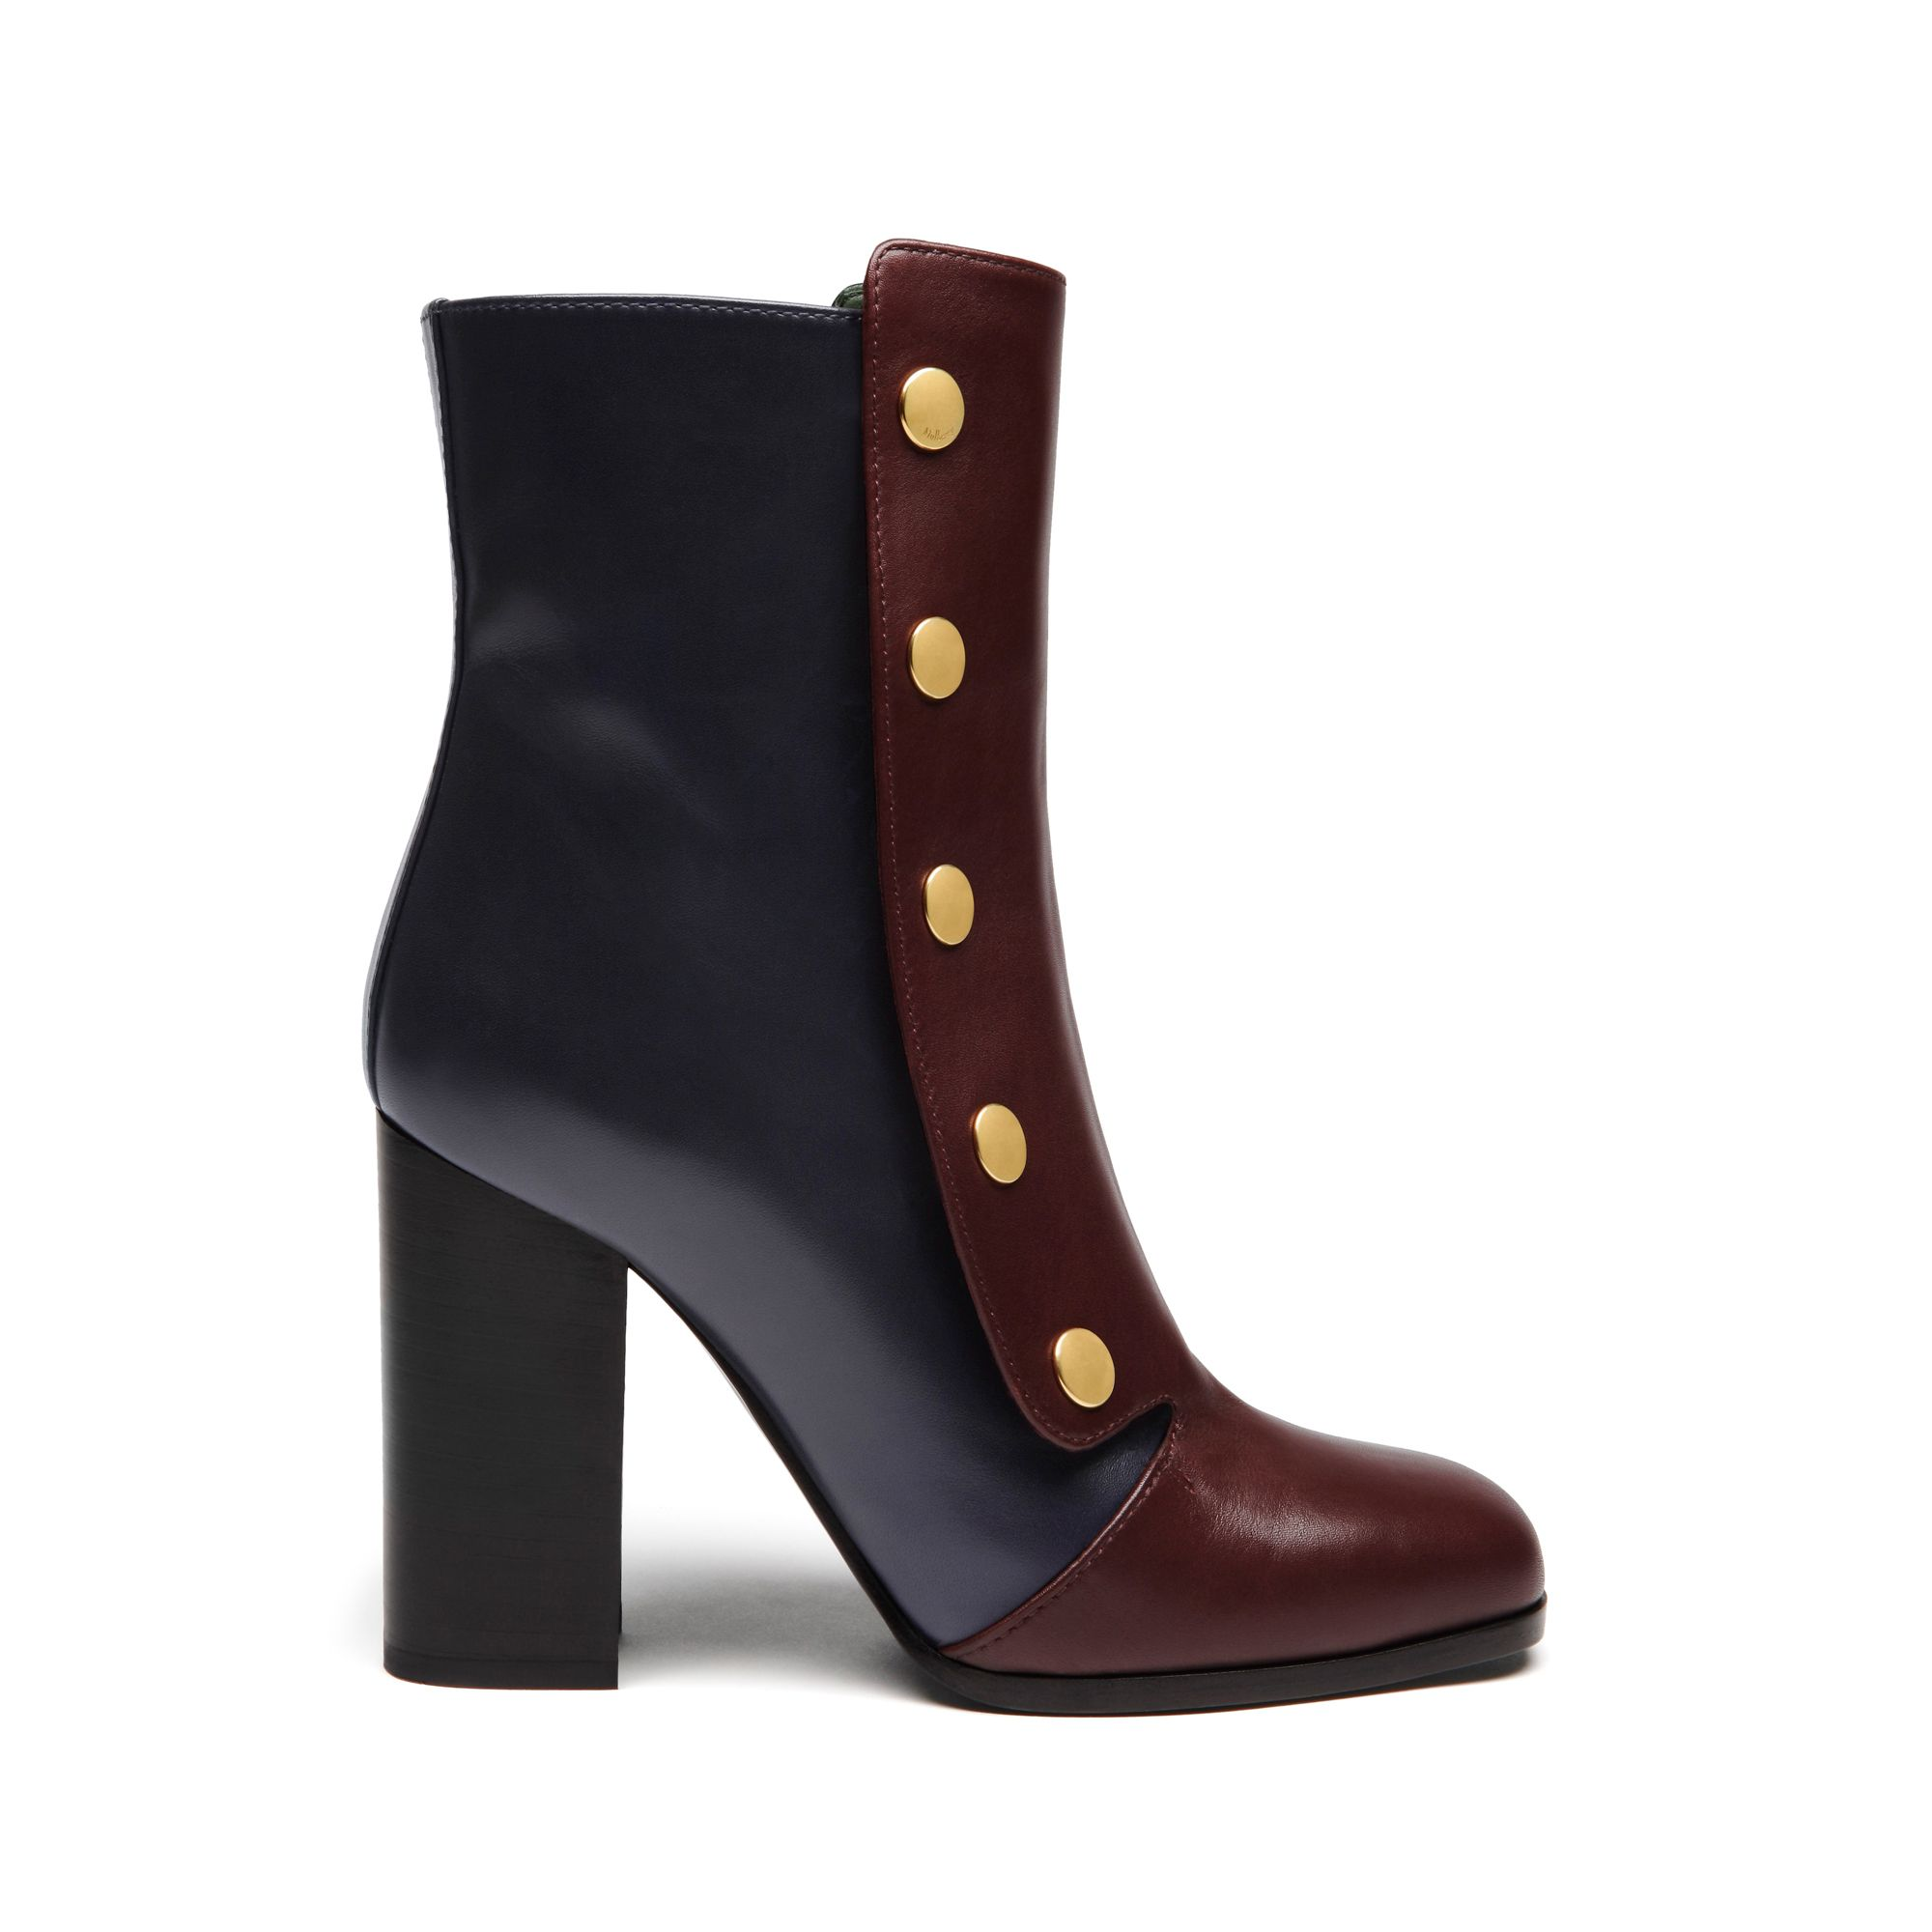 Image result for image of mulberry boots